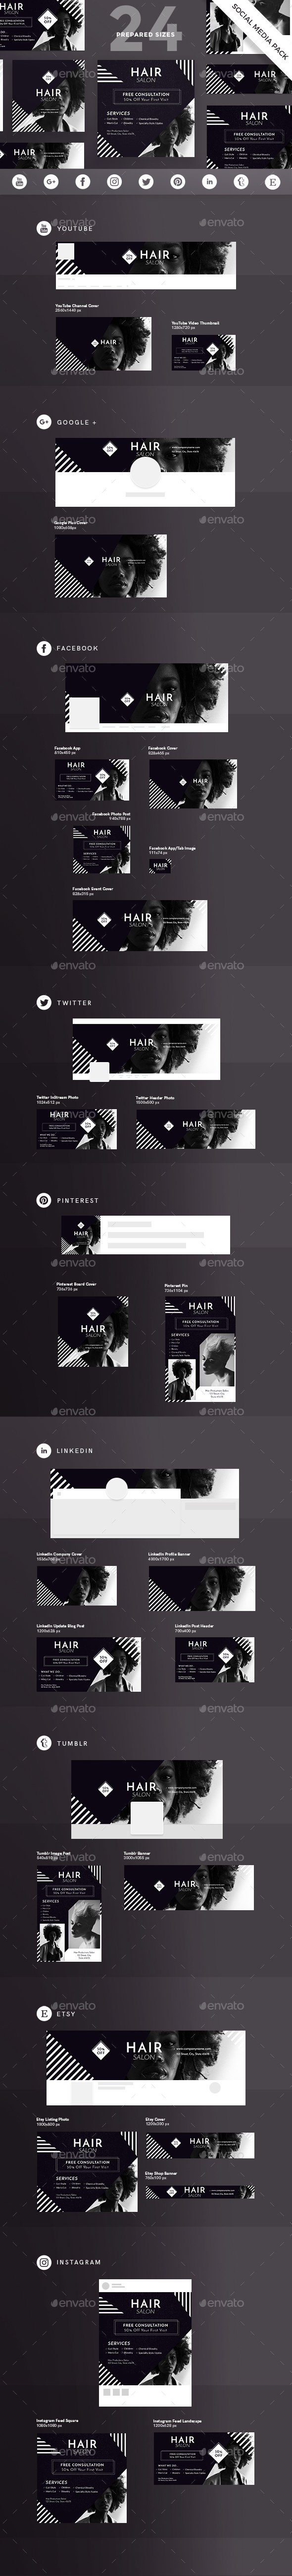 Hair Salon Social Media Pack - Miscellaneous Social Media